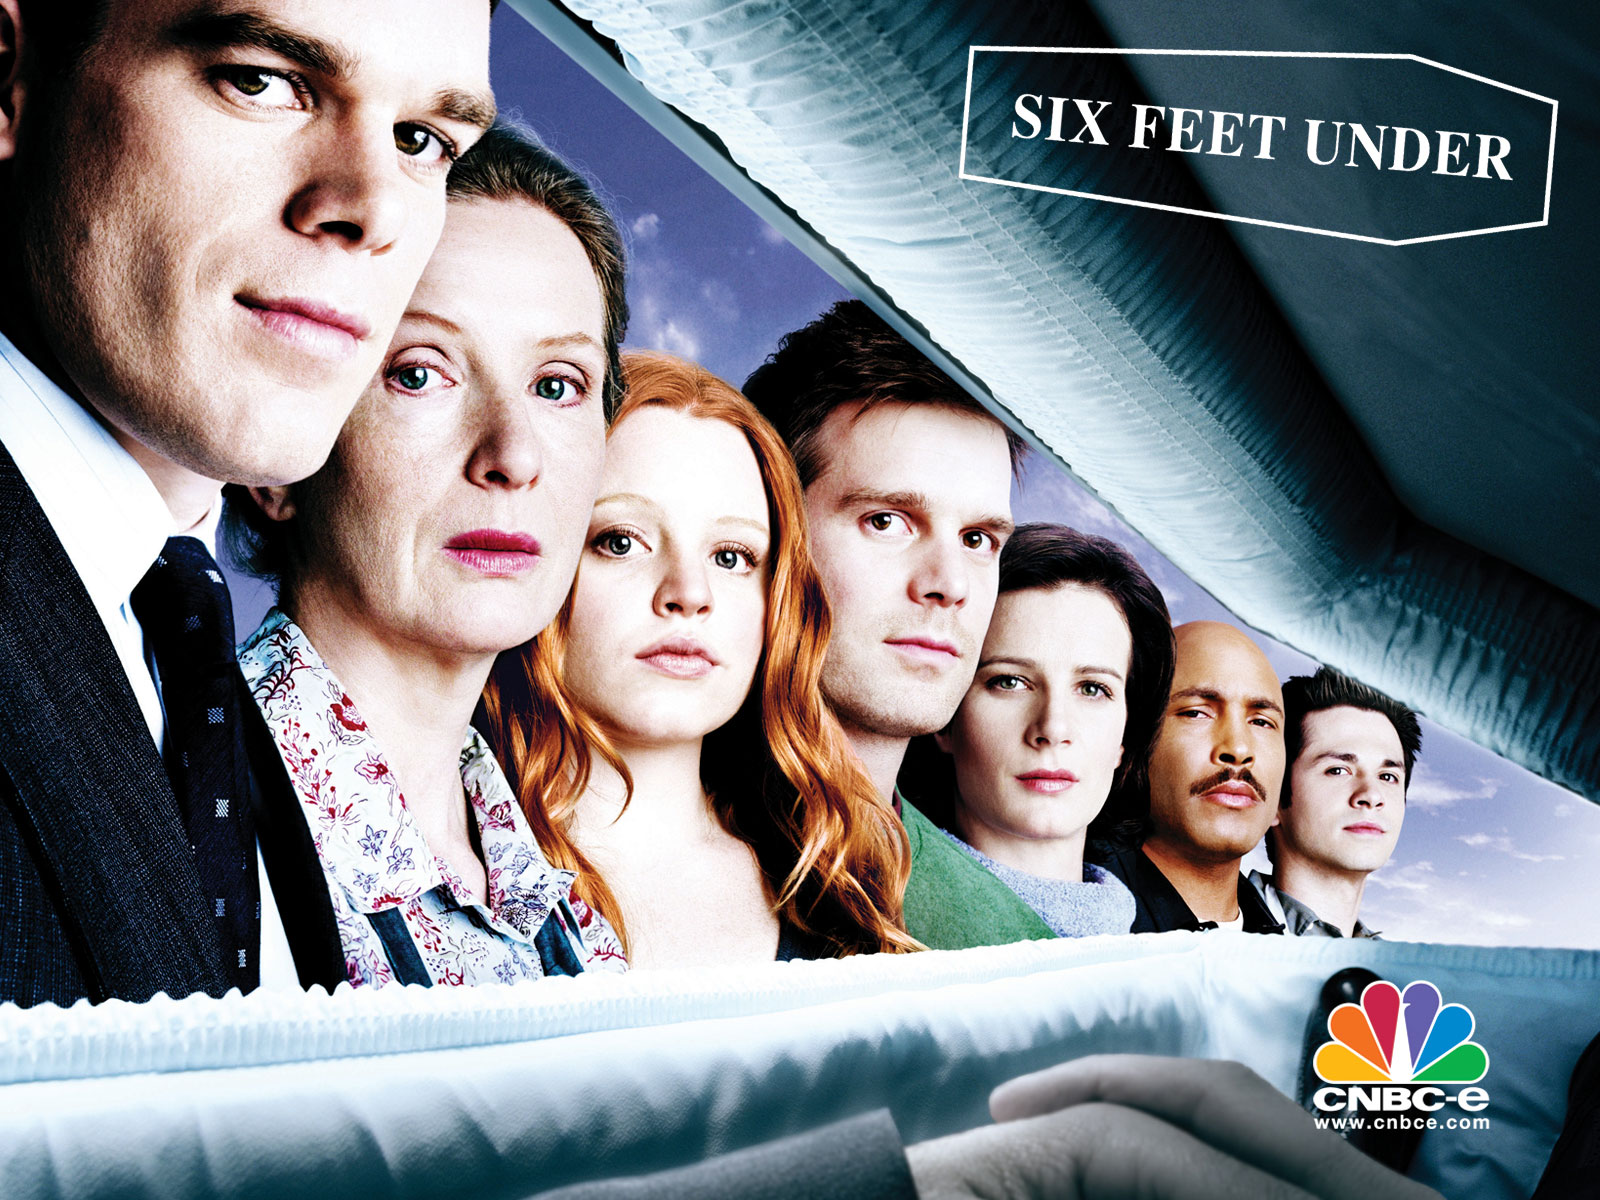 6 feet under Six feet under is an american drama television series created and produced by alan ballit premiered on the premium cable network hbo in the united states on june 3, 2001, and ended on august 21, 2005, spanning five seasons and 63 episodes.